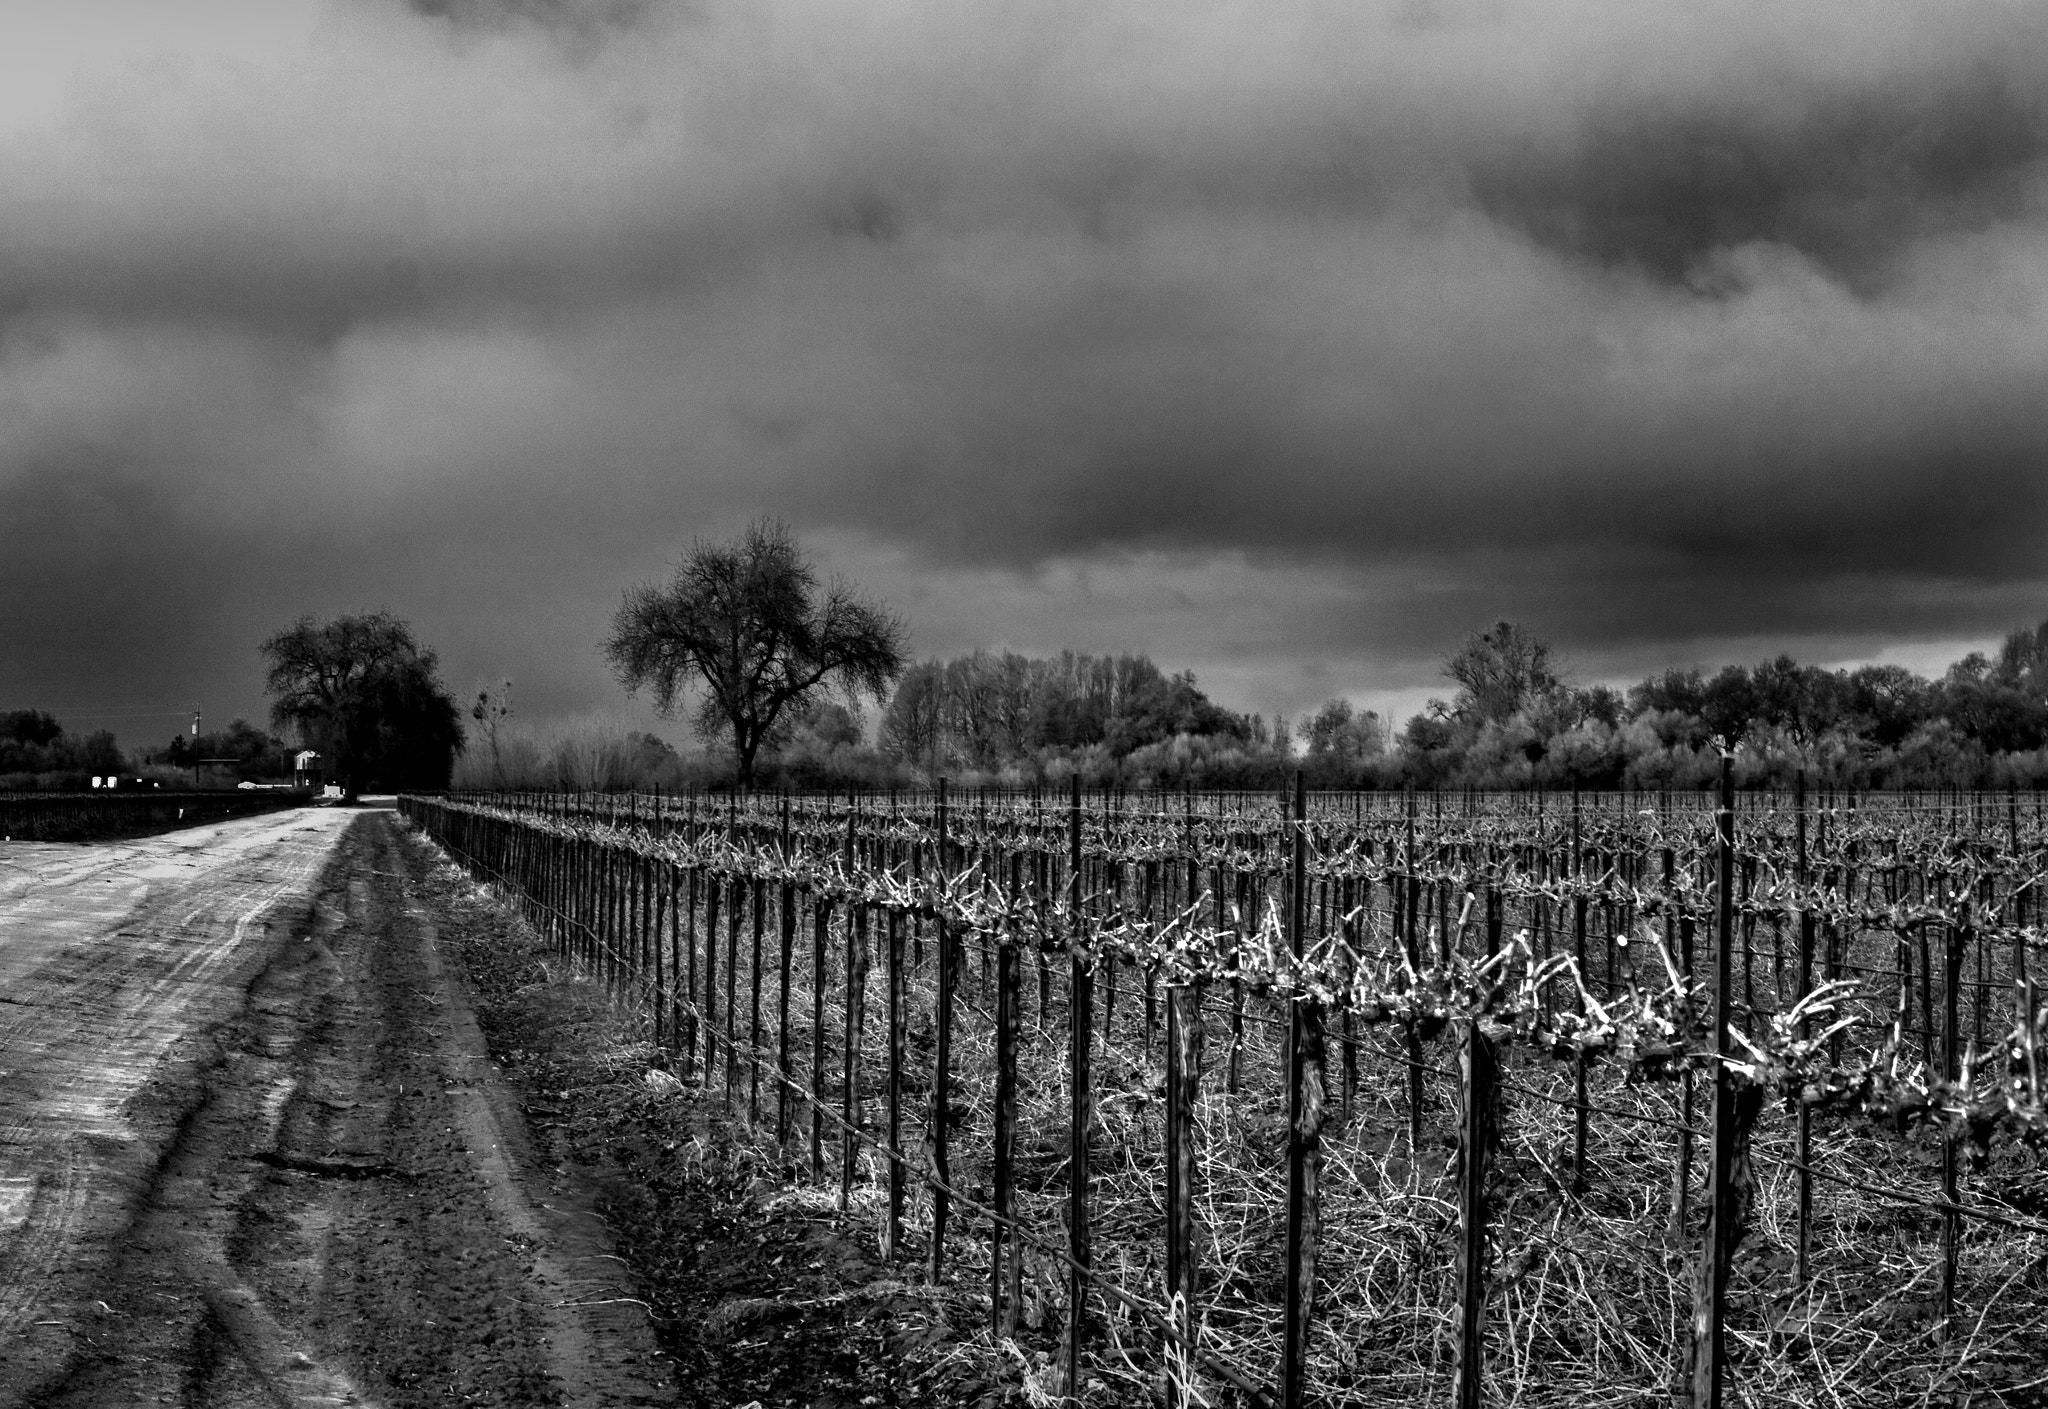 Photograph Grapevines by Mark Hendrickson on 500px